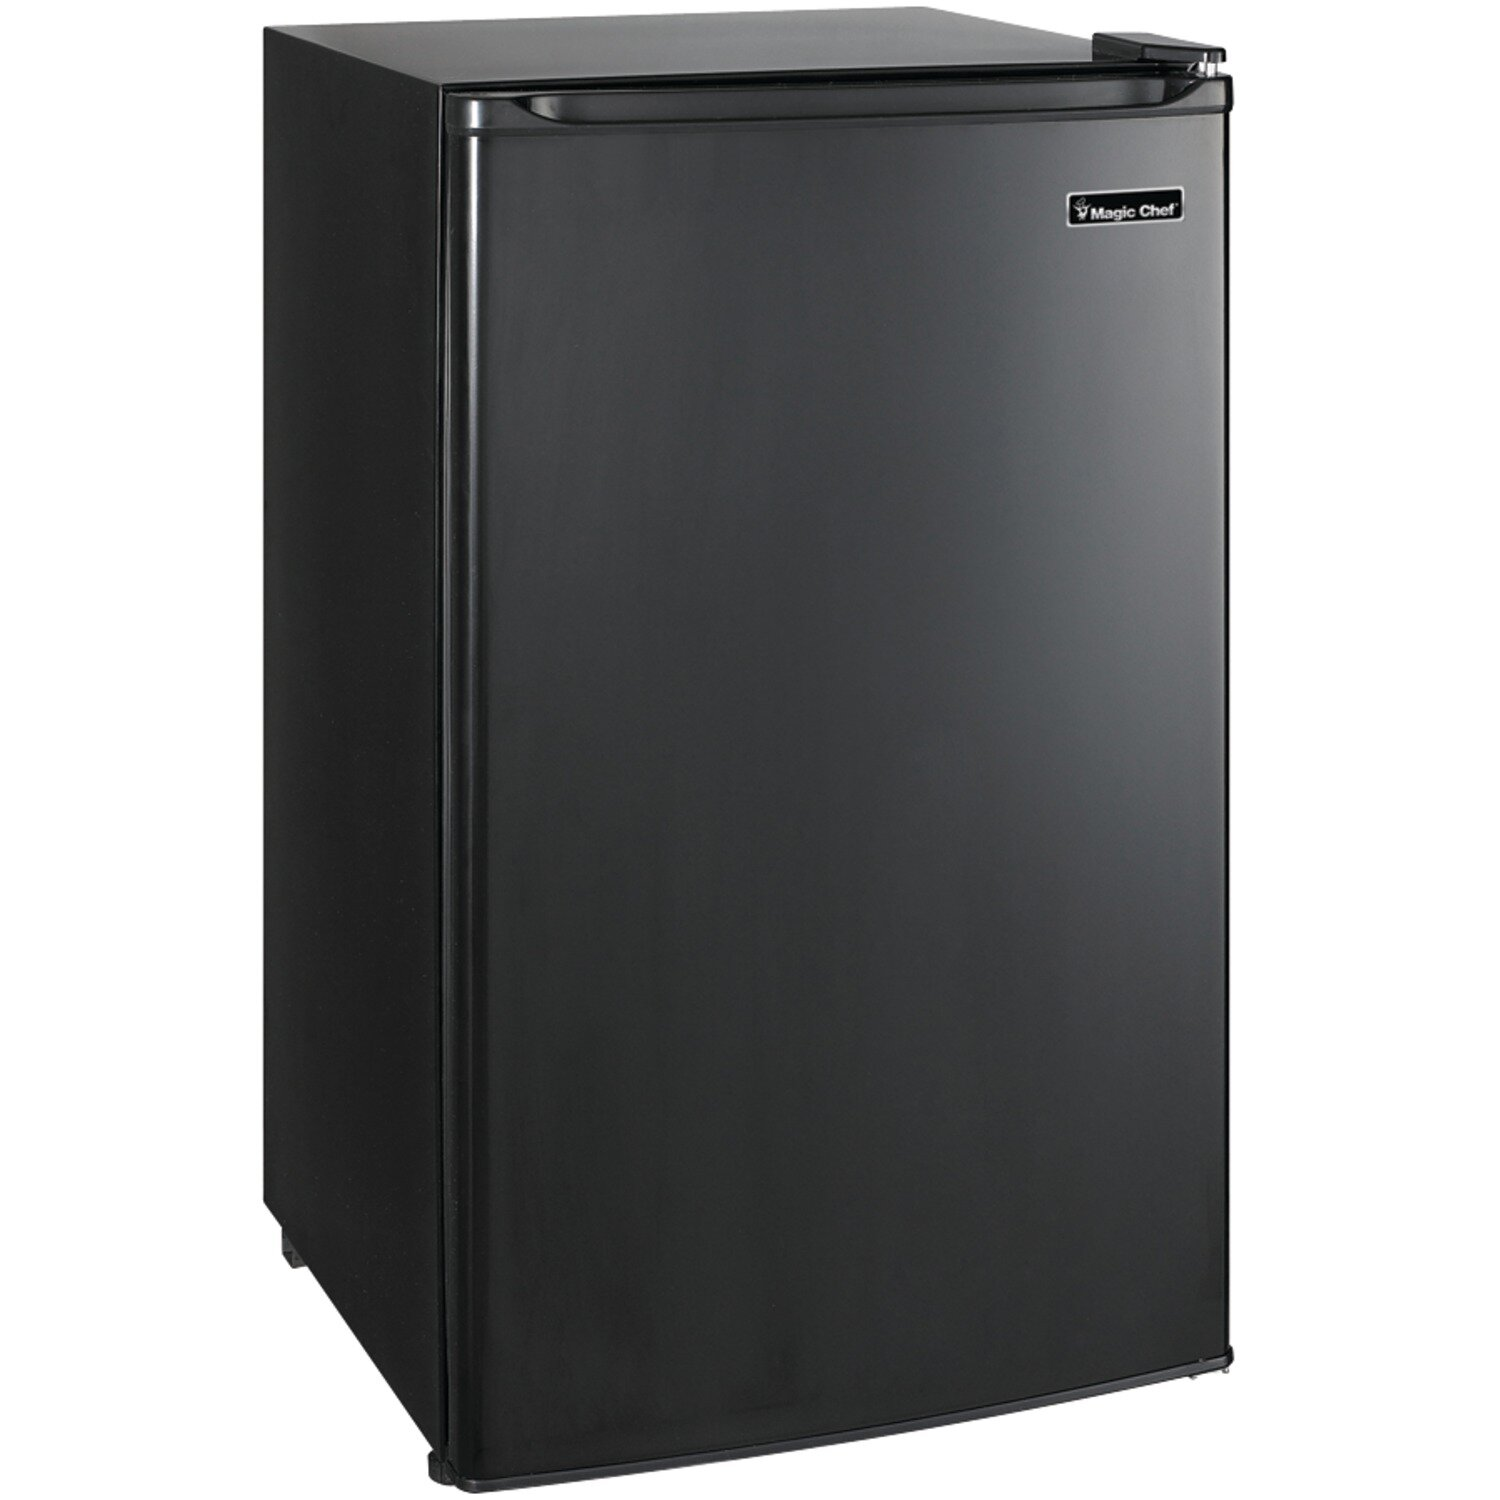 Magic Chef 3 5 Cu Ft Compact Refrigerator Amp Reviews